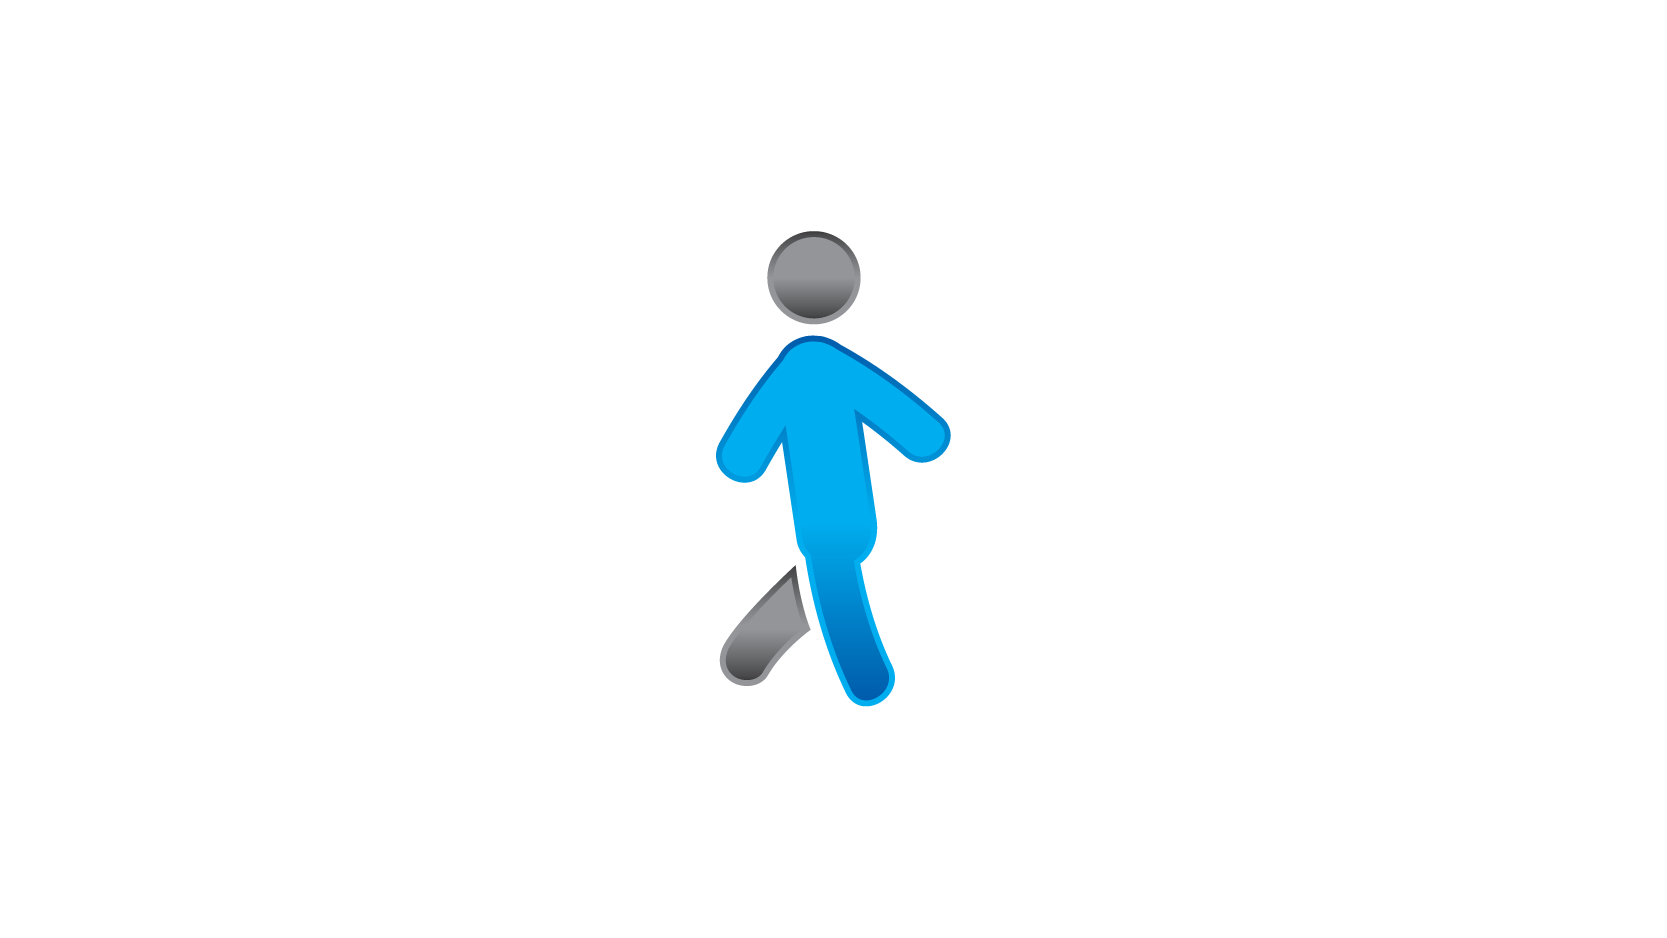 fk-oluk-infinityfuturelivingicons2ndrev-separated_person-walkpng